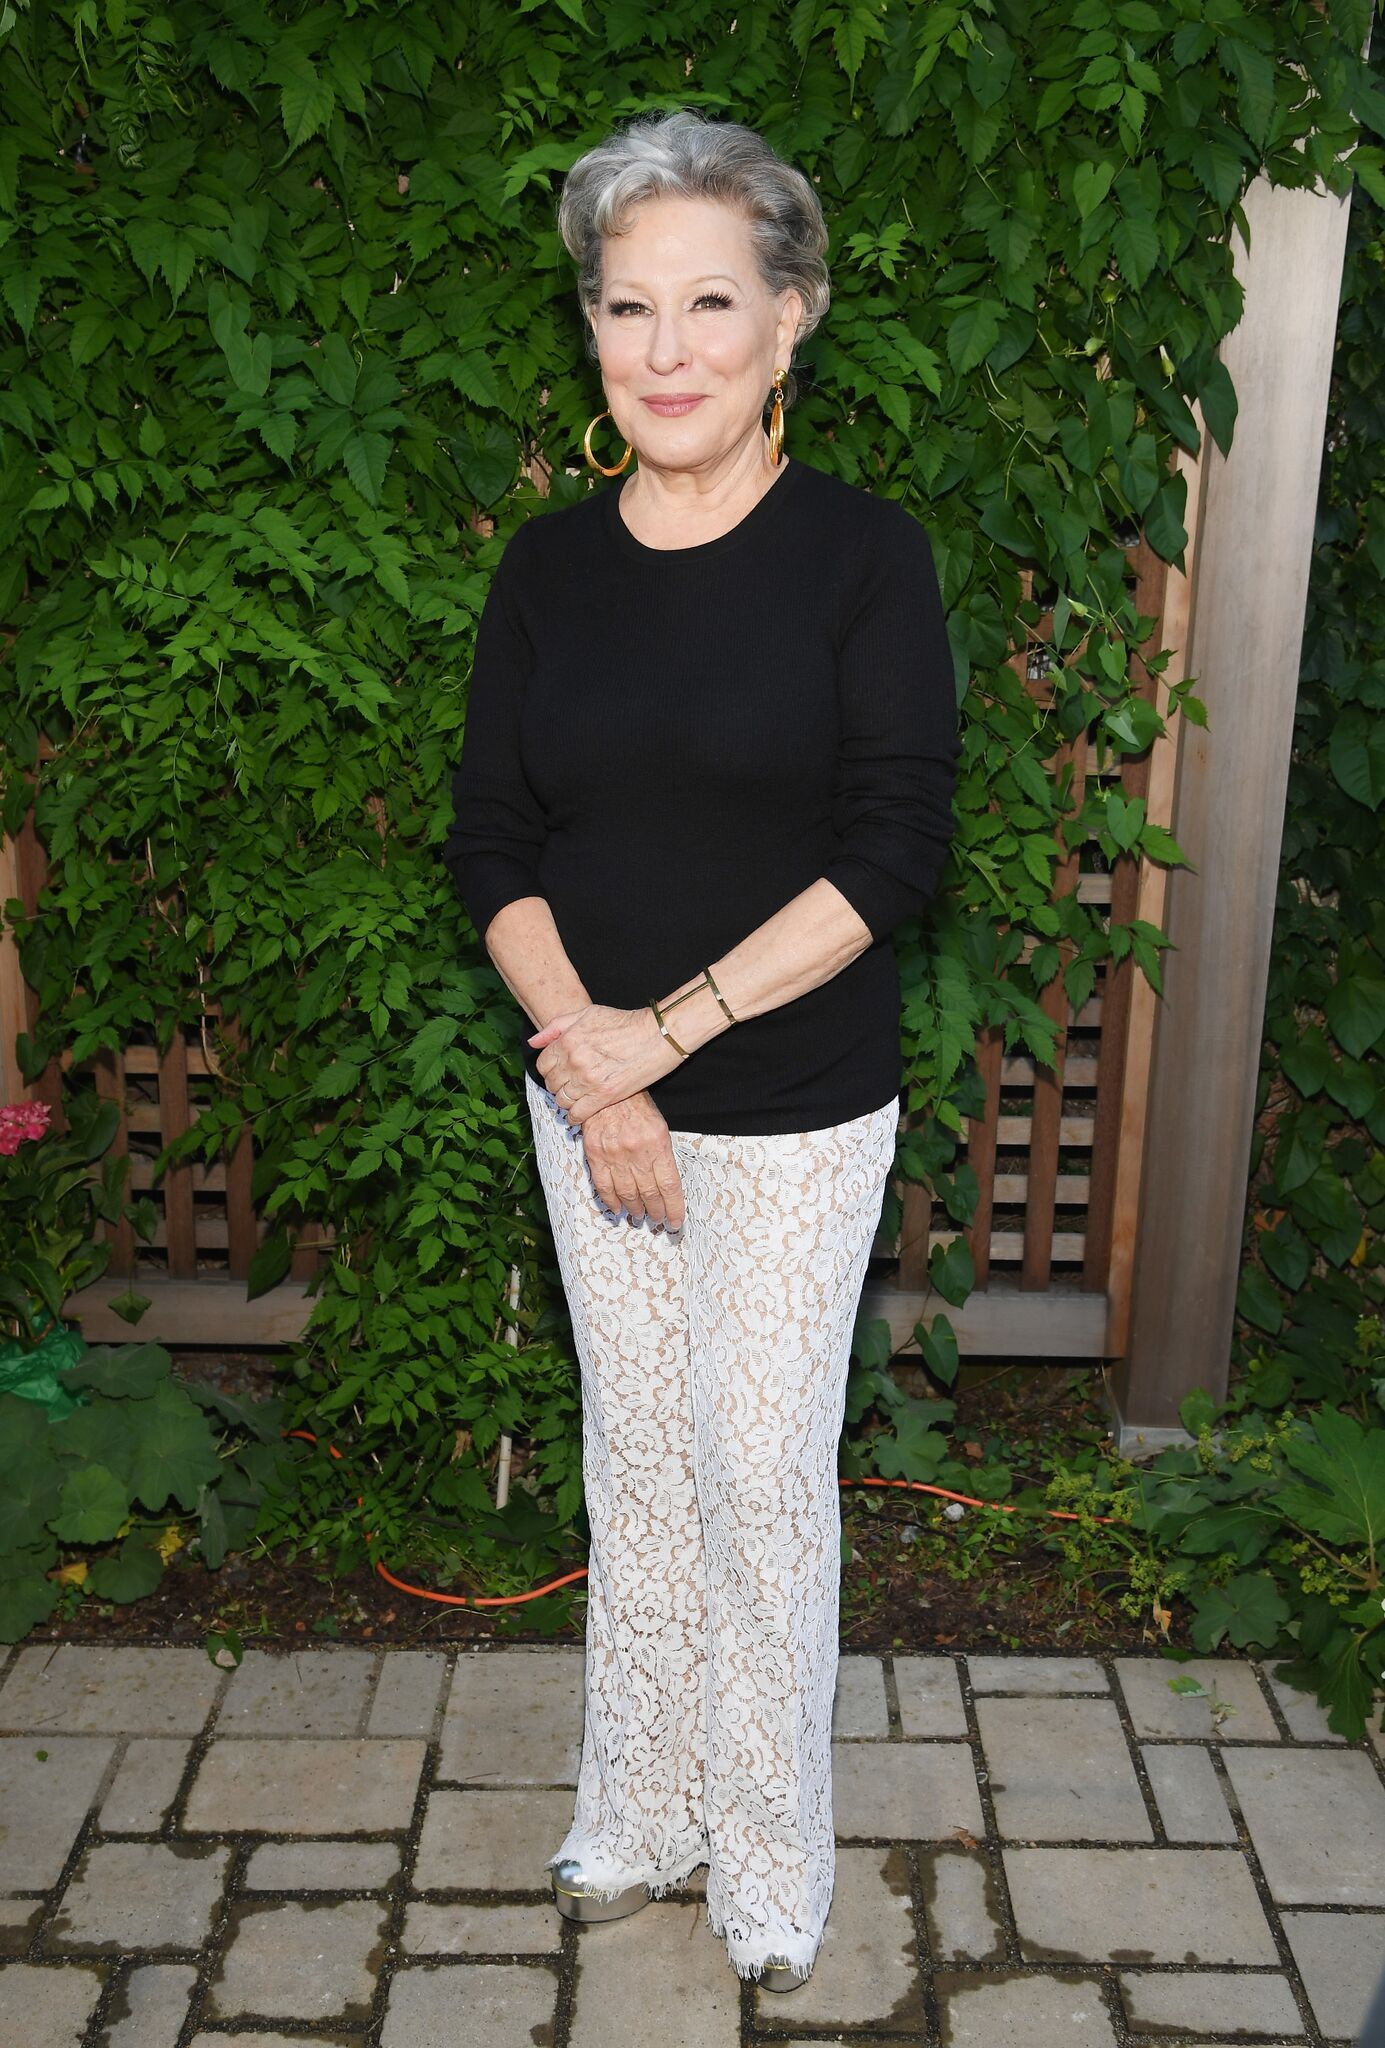 Bette Midler attends as Michael Kors and the New York Restoration Project Celebrate The Opening Of The Essex Street Community Garden | Getty Images